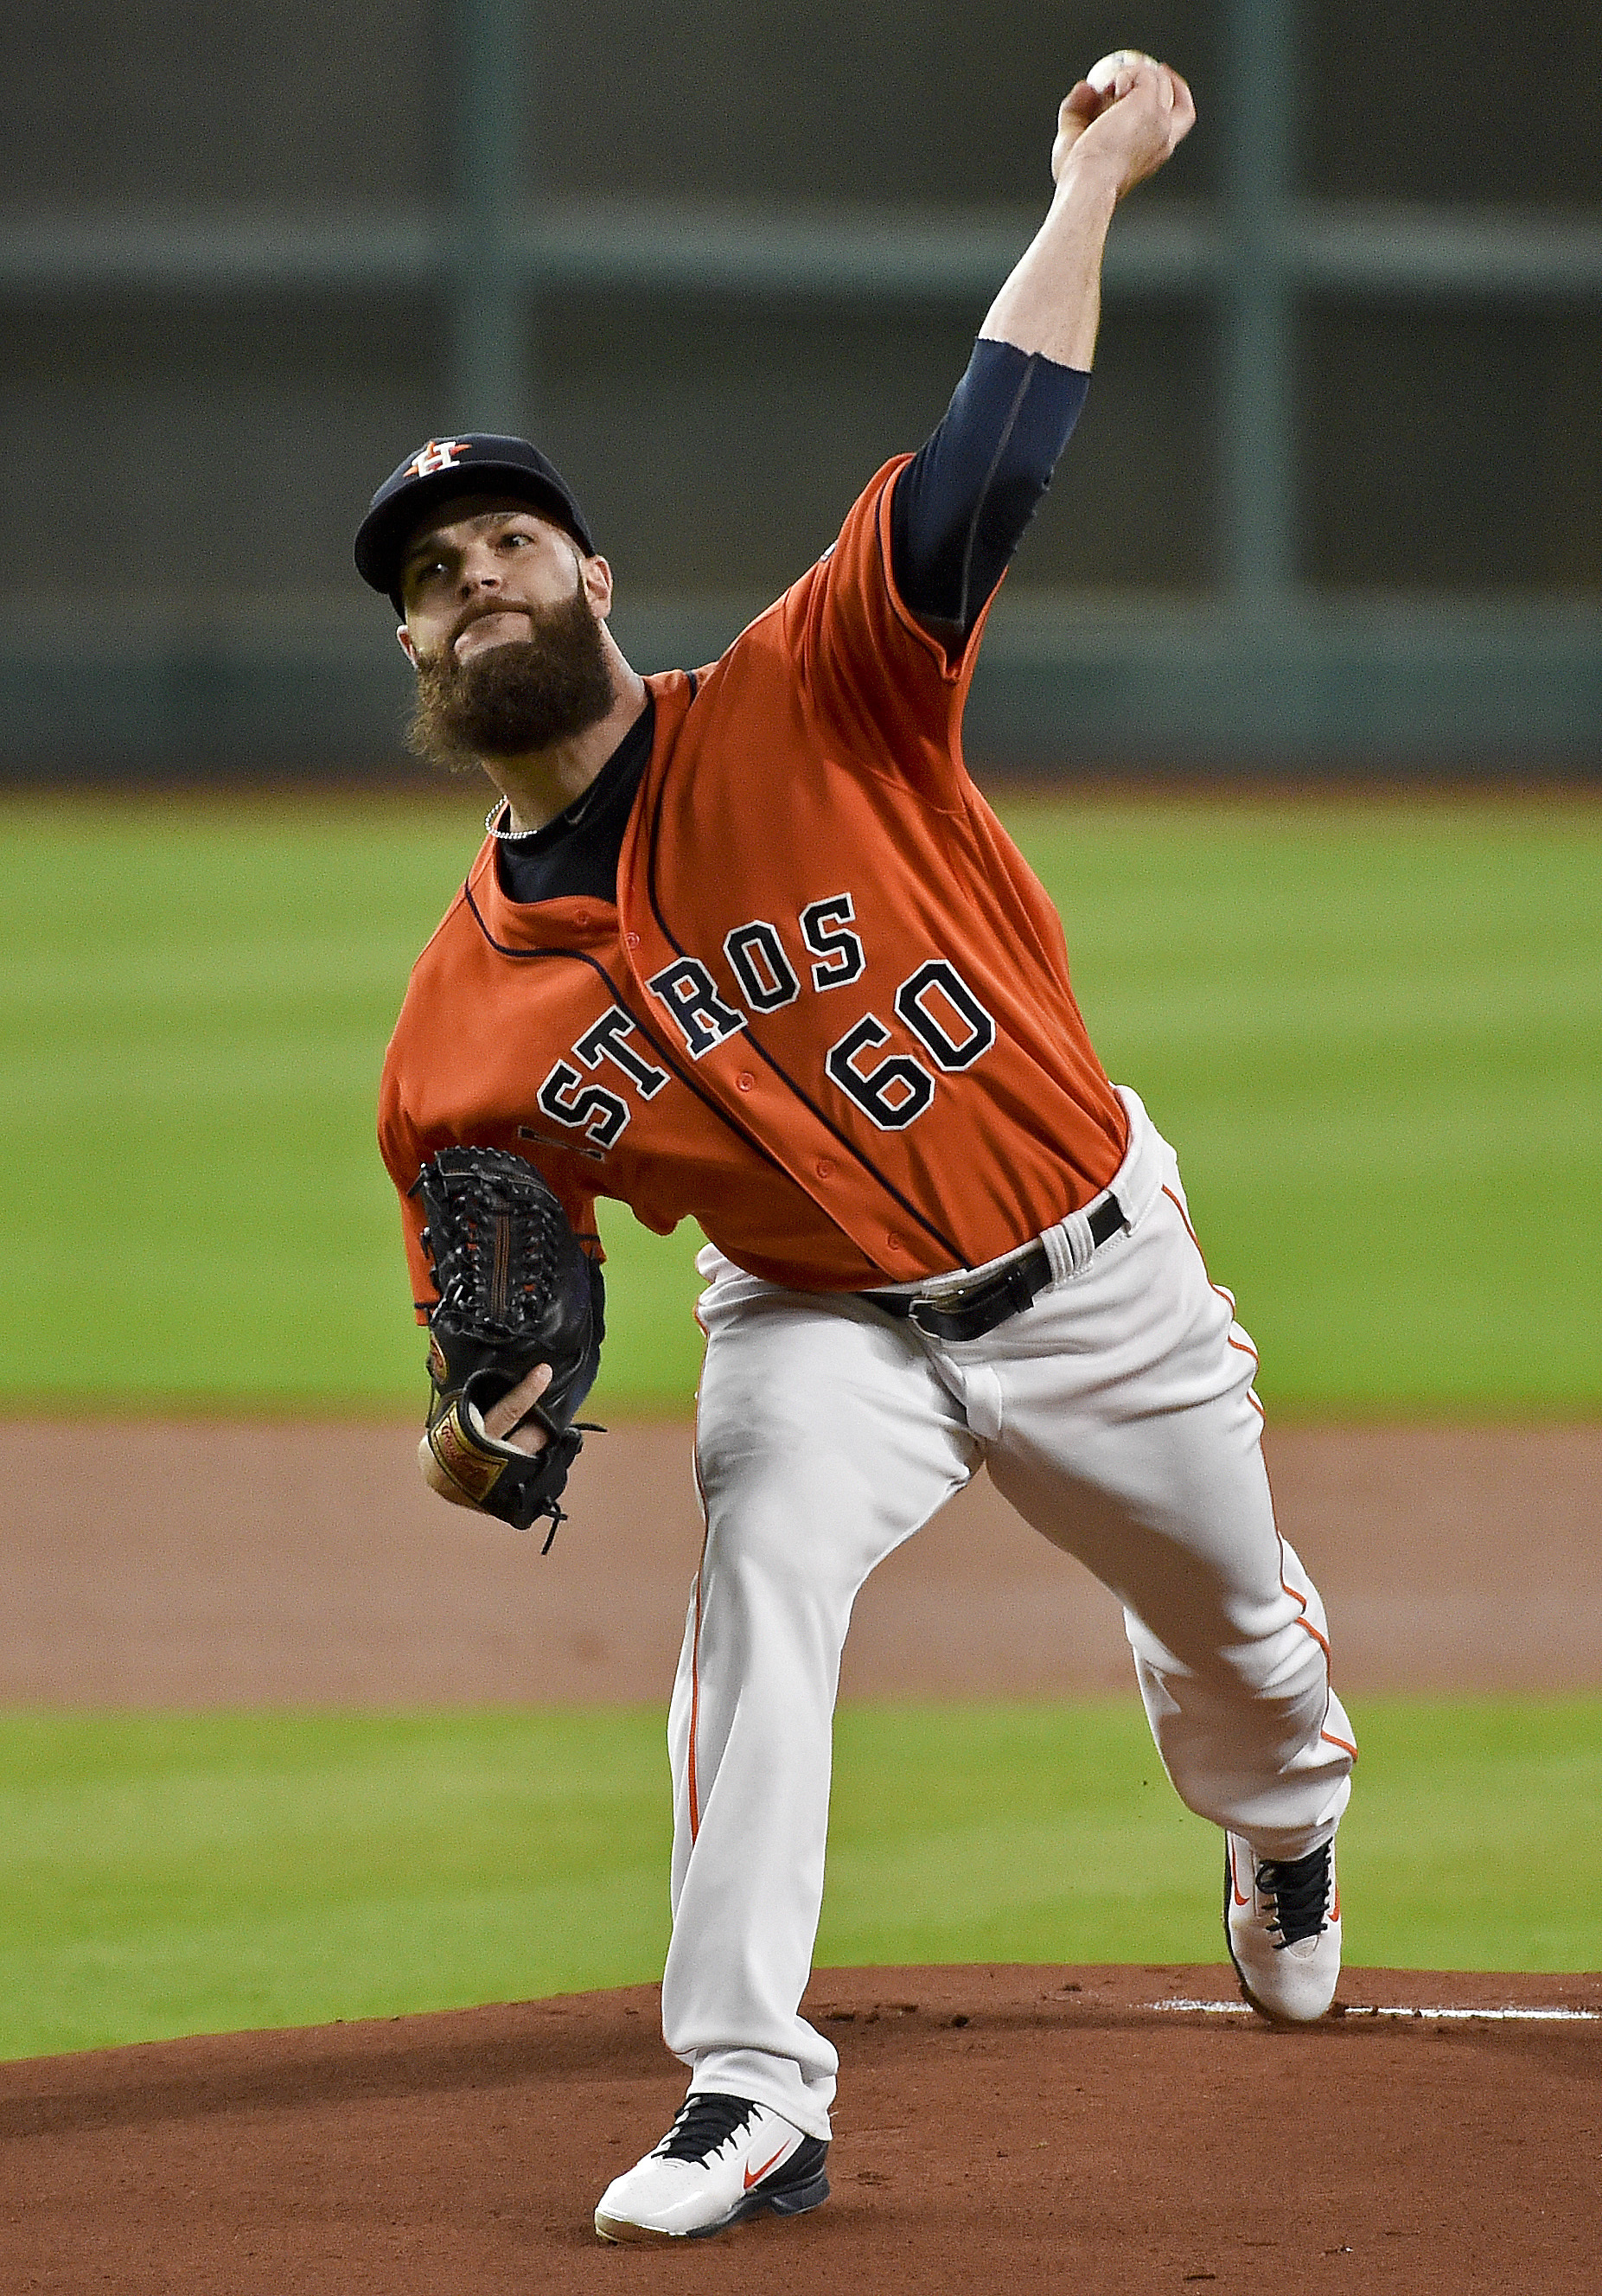 Houston Astros starting pitcher Dallas Keuchel delivers in the first inning of a baseball game against the Texas Rangers, Friday, Aug. 5, 2016, in Houston. (AP Photo/Eric Christian Smith)